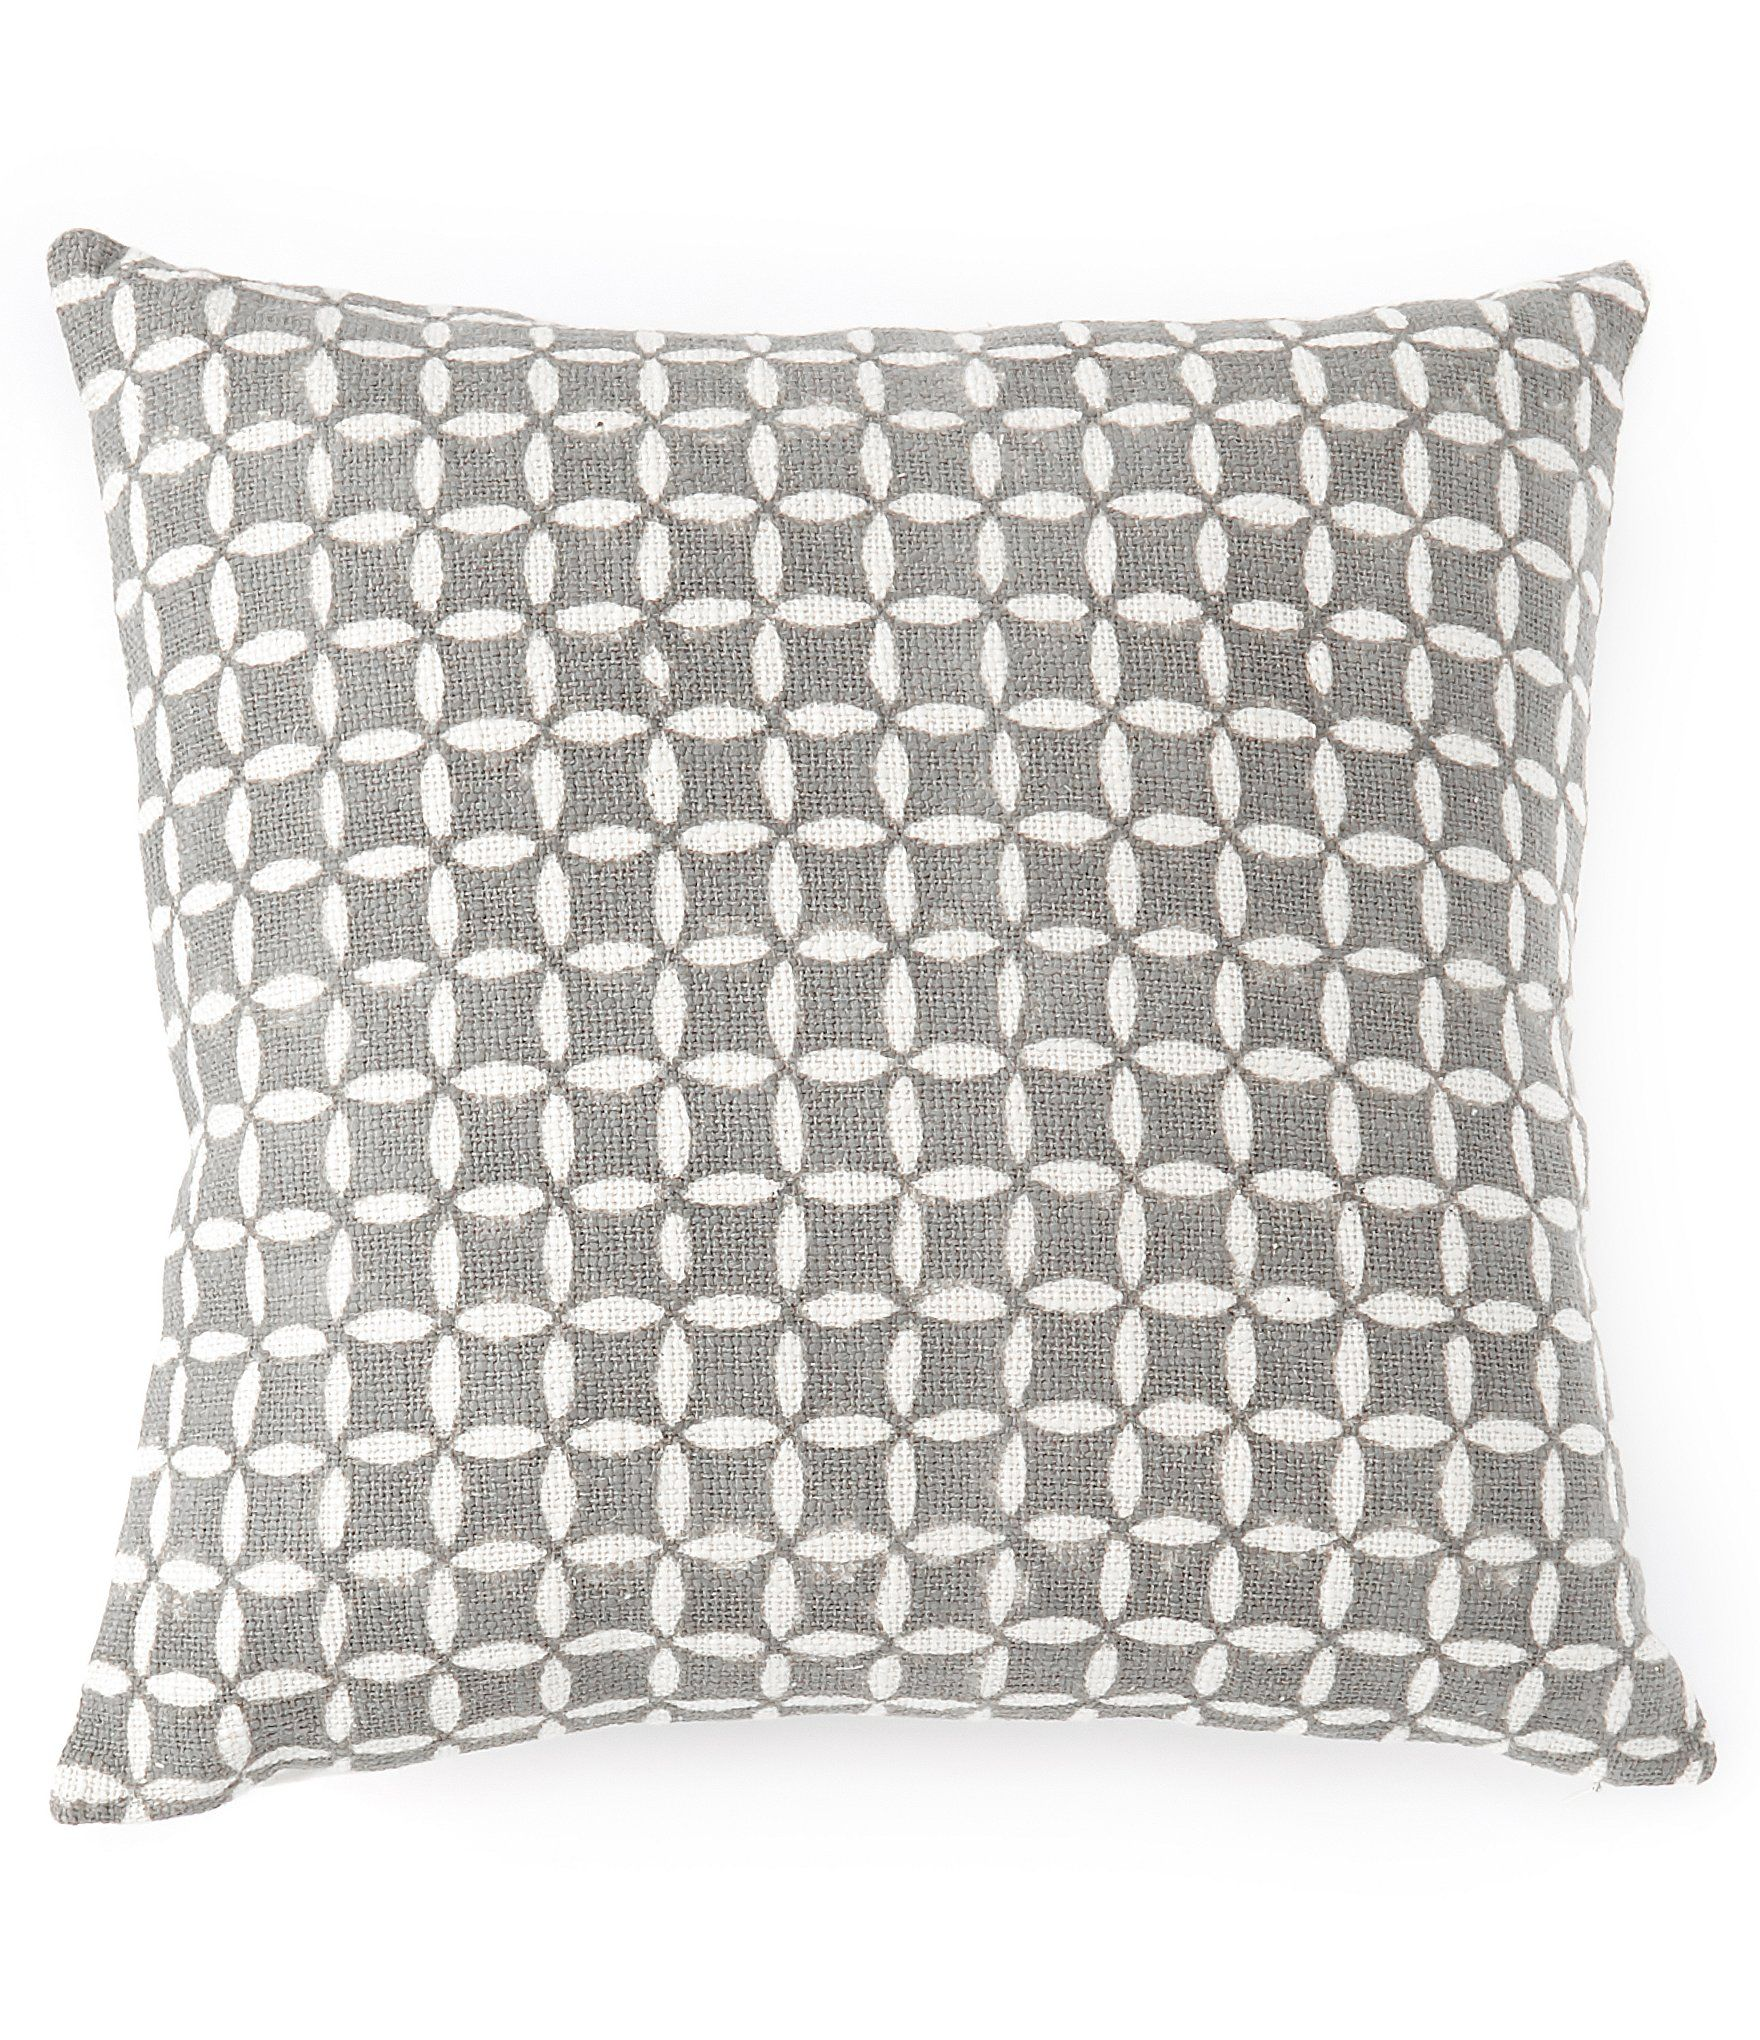 Southern Living Simplicity Collection Madison Woven Square Pillow - Gray N/A